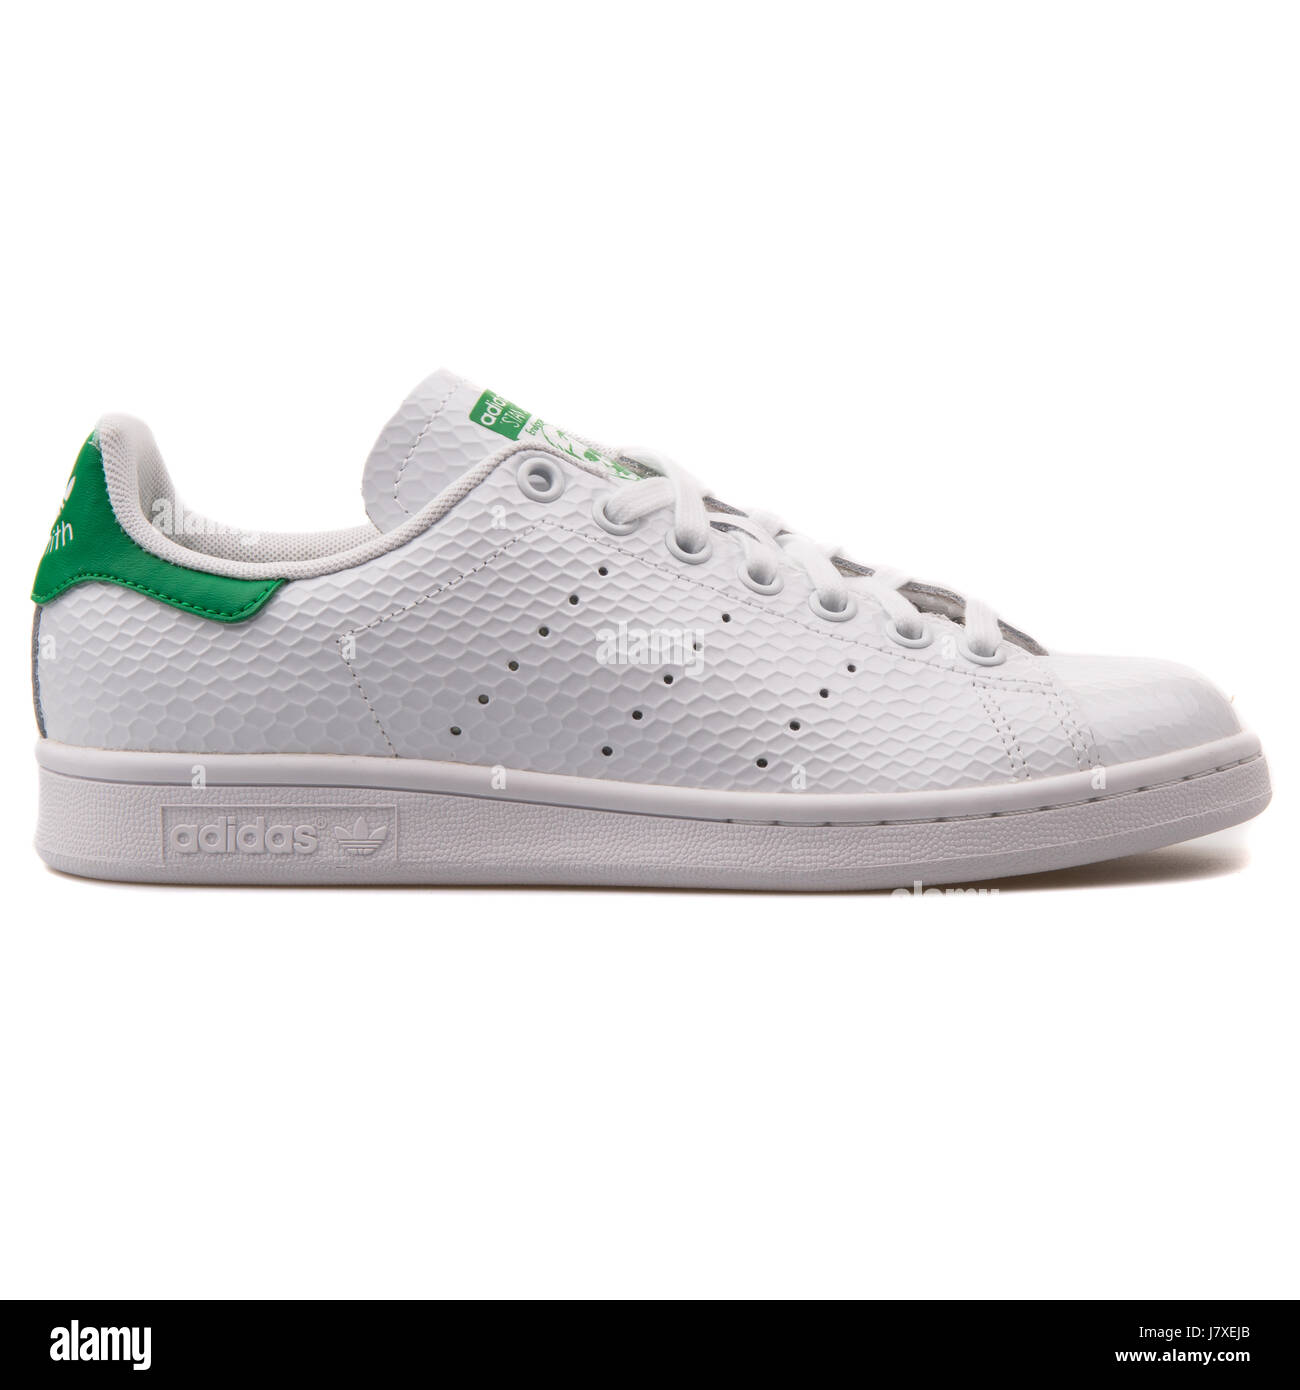 1cb2ce8a Adidas Originals Stan Smith W Women's White with Green Sneakers - B35443